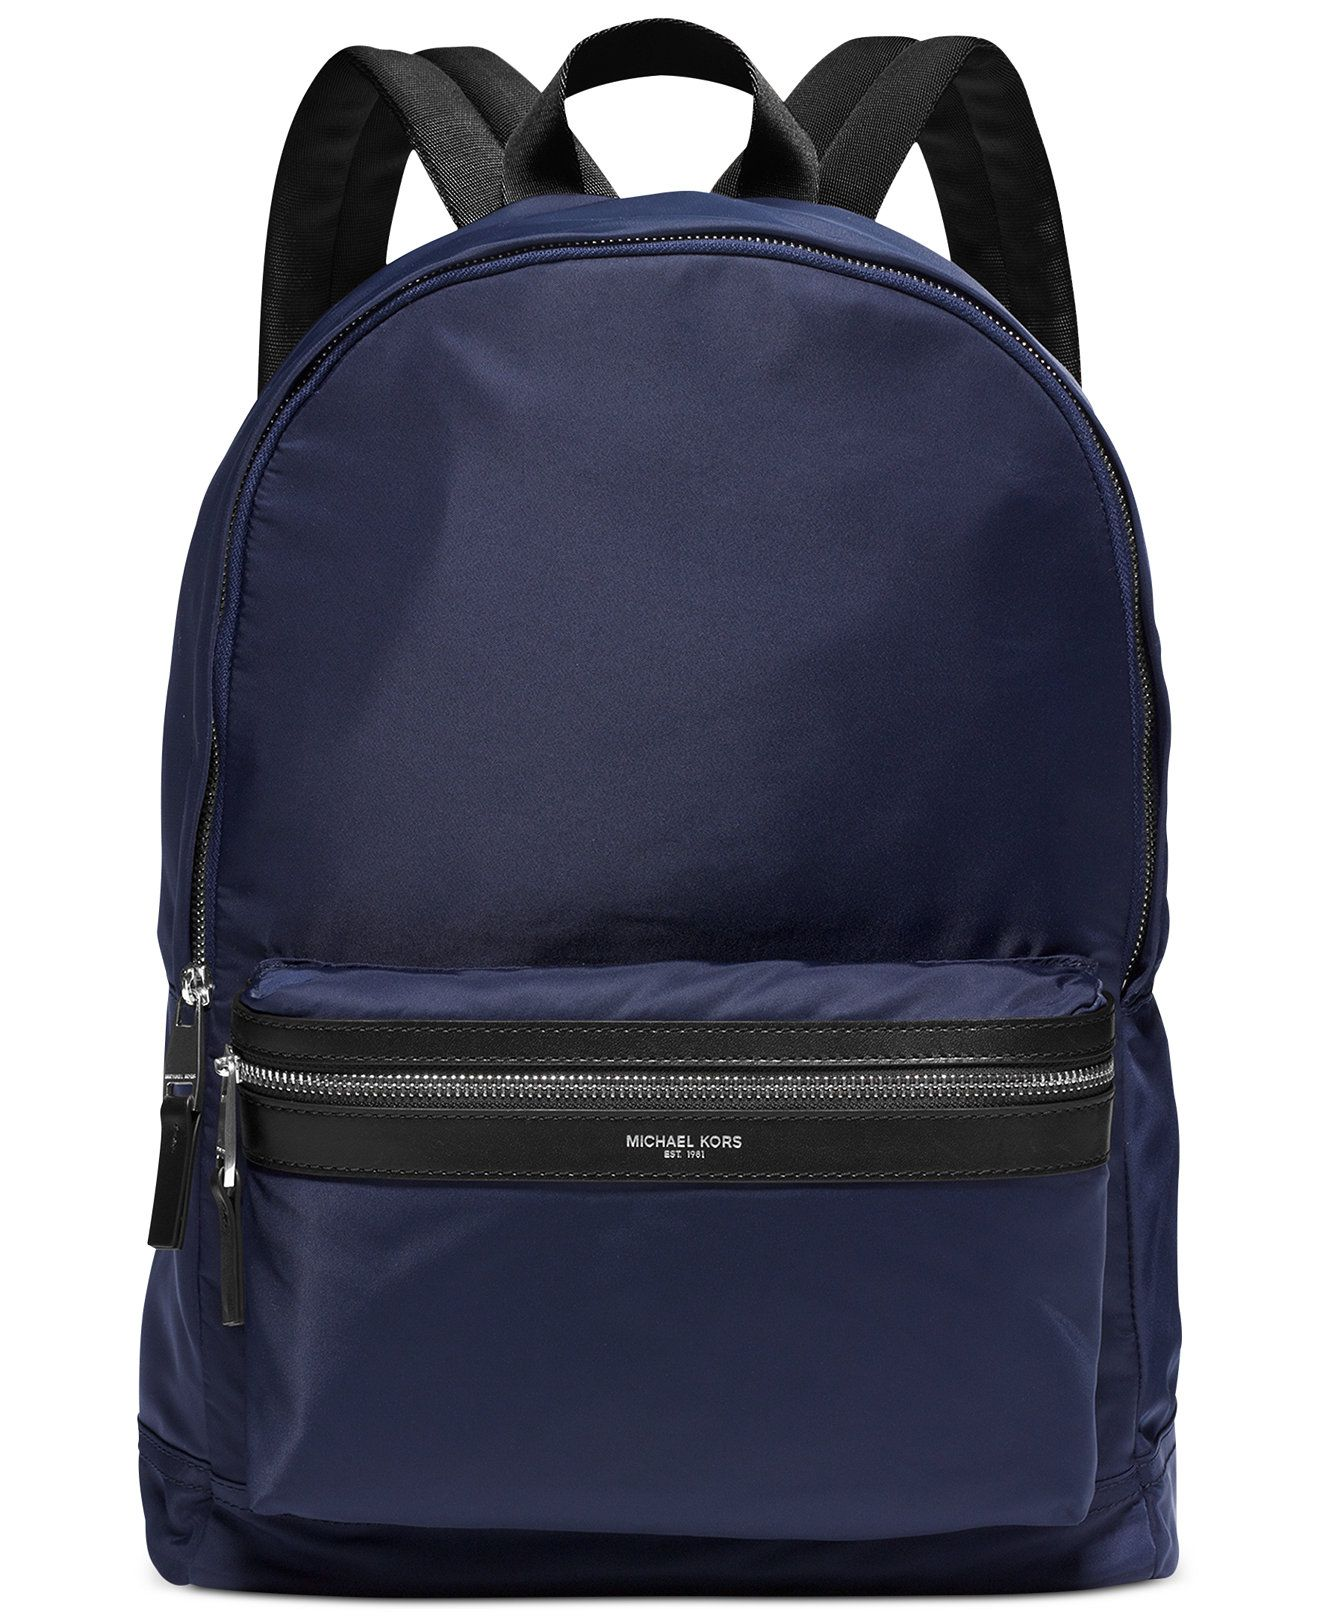 dec9eb5b293f Michael Kors Kent Lightweight Nylon Backpack - Accessories & Wallets - Men  - Macy's